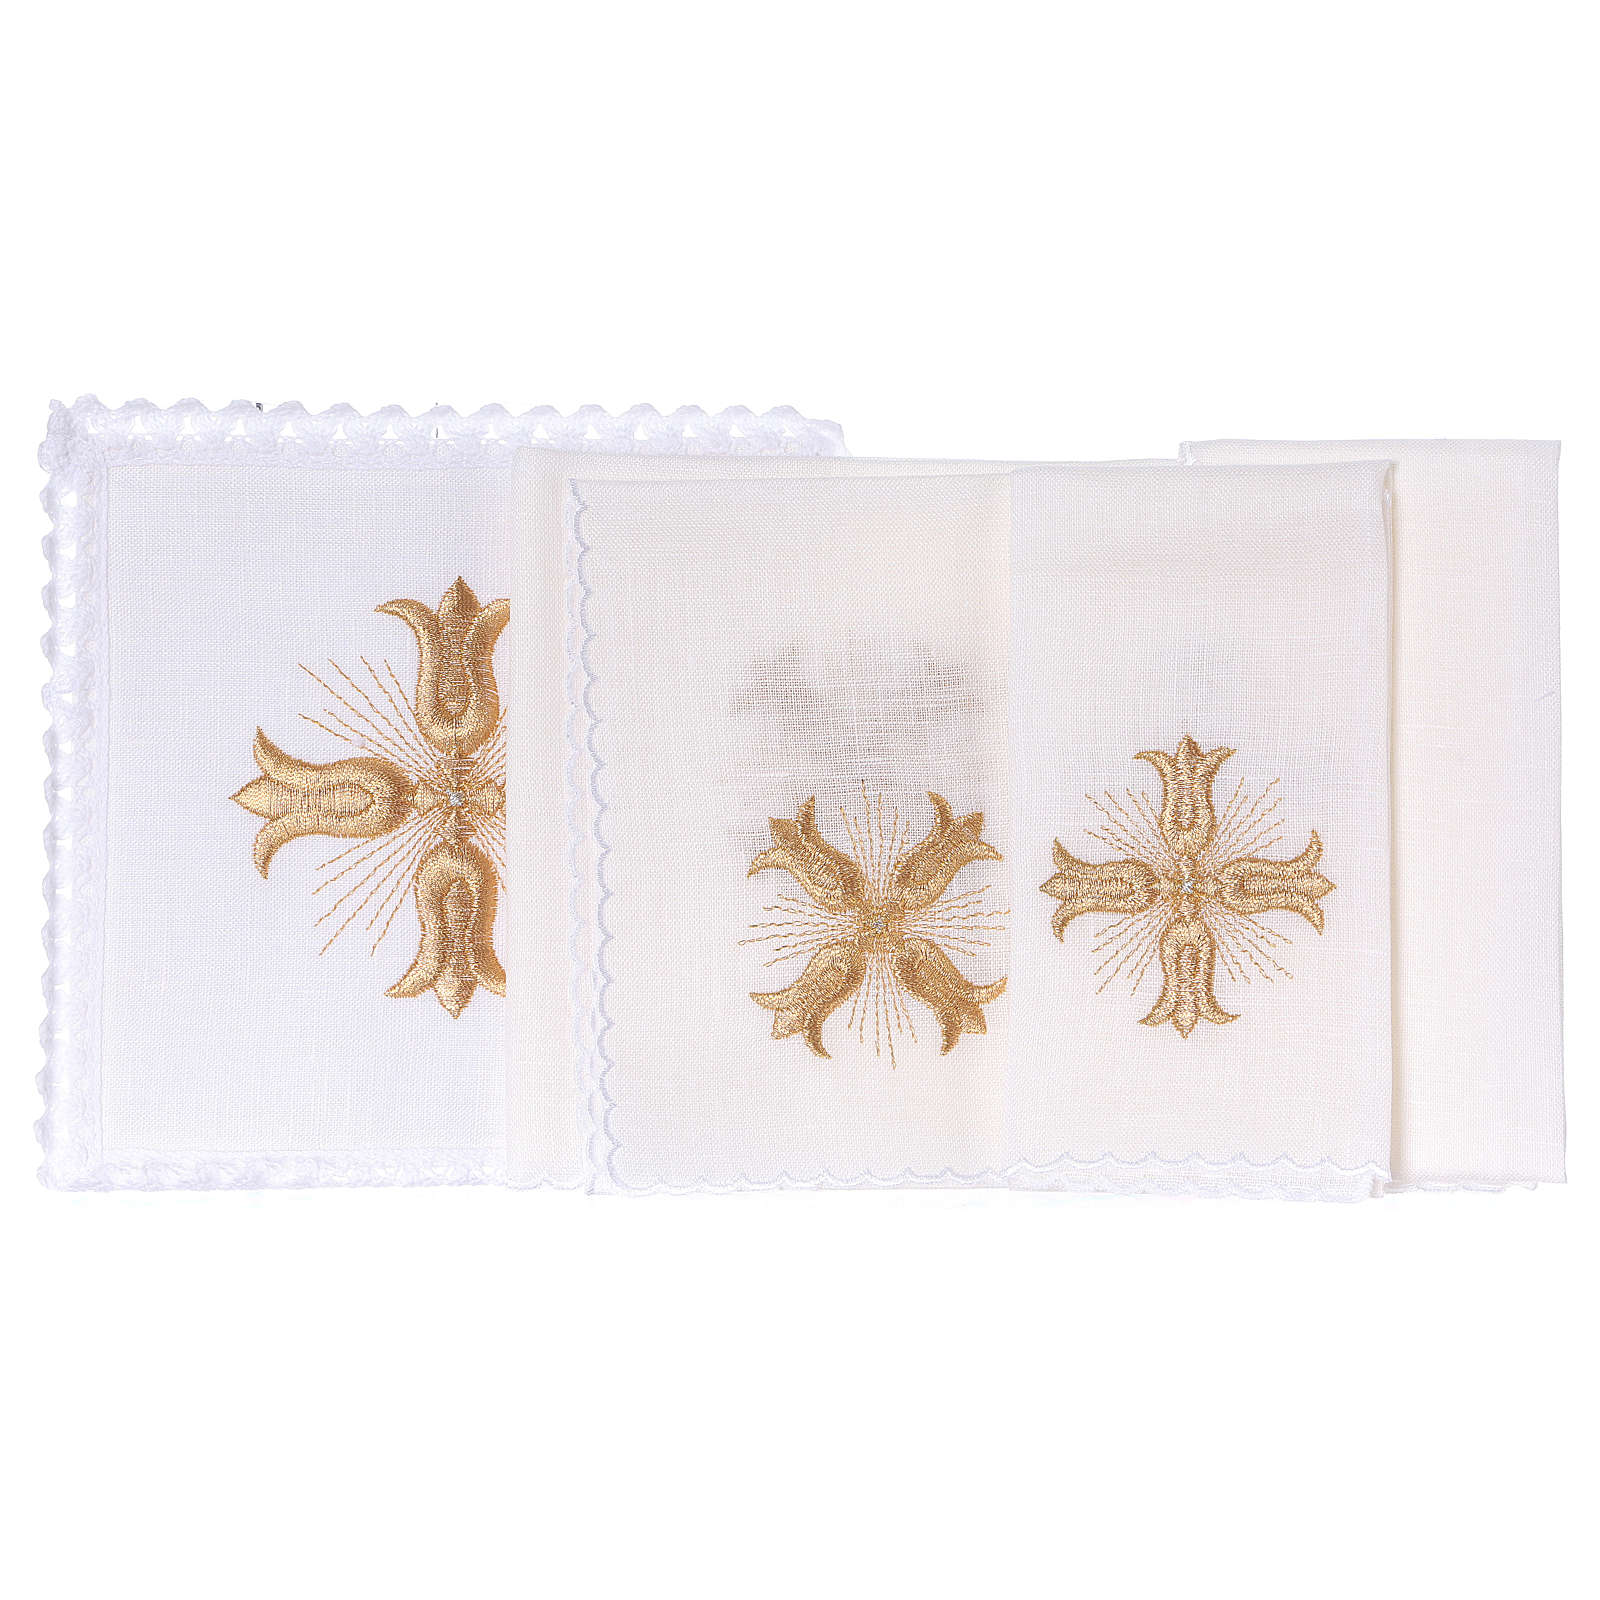 Altar linen golden cross baroque style with rays 4